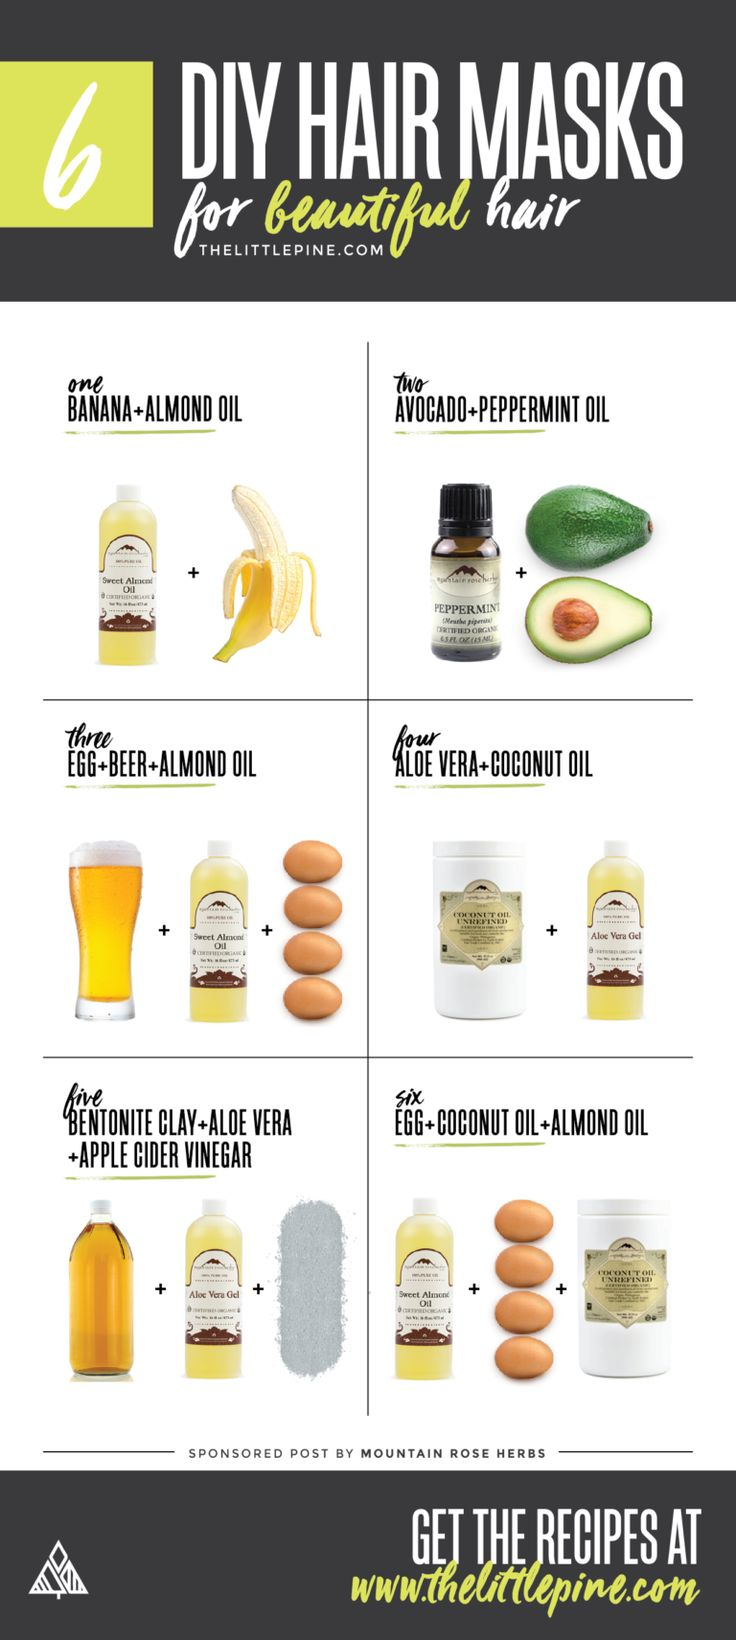 6 DIY Hair Masks Avocado hair mask, Avocado hair, Diy